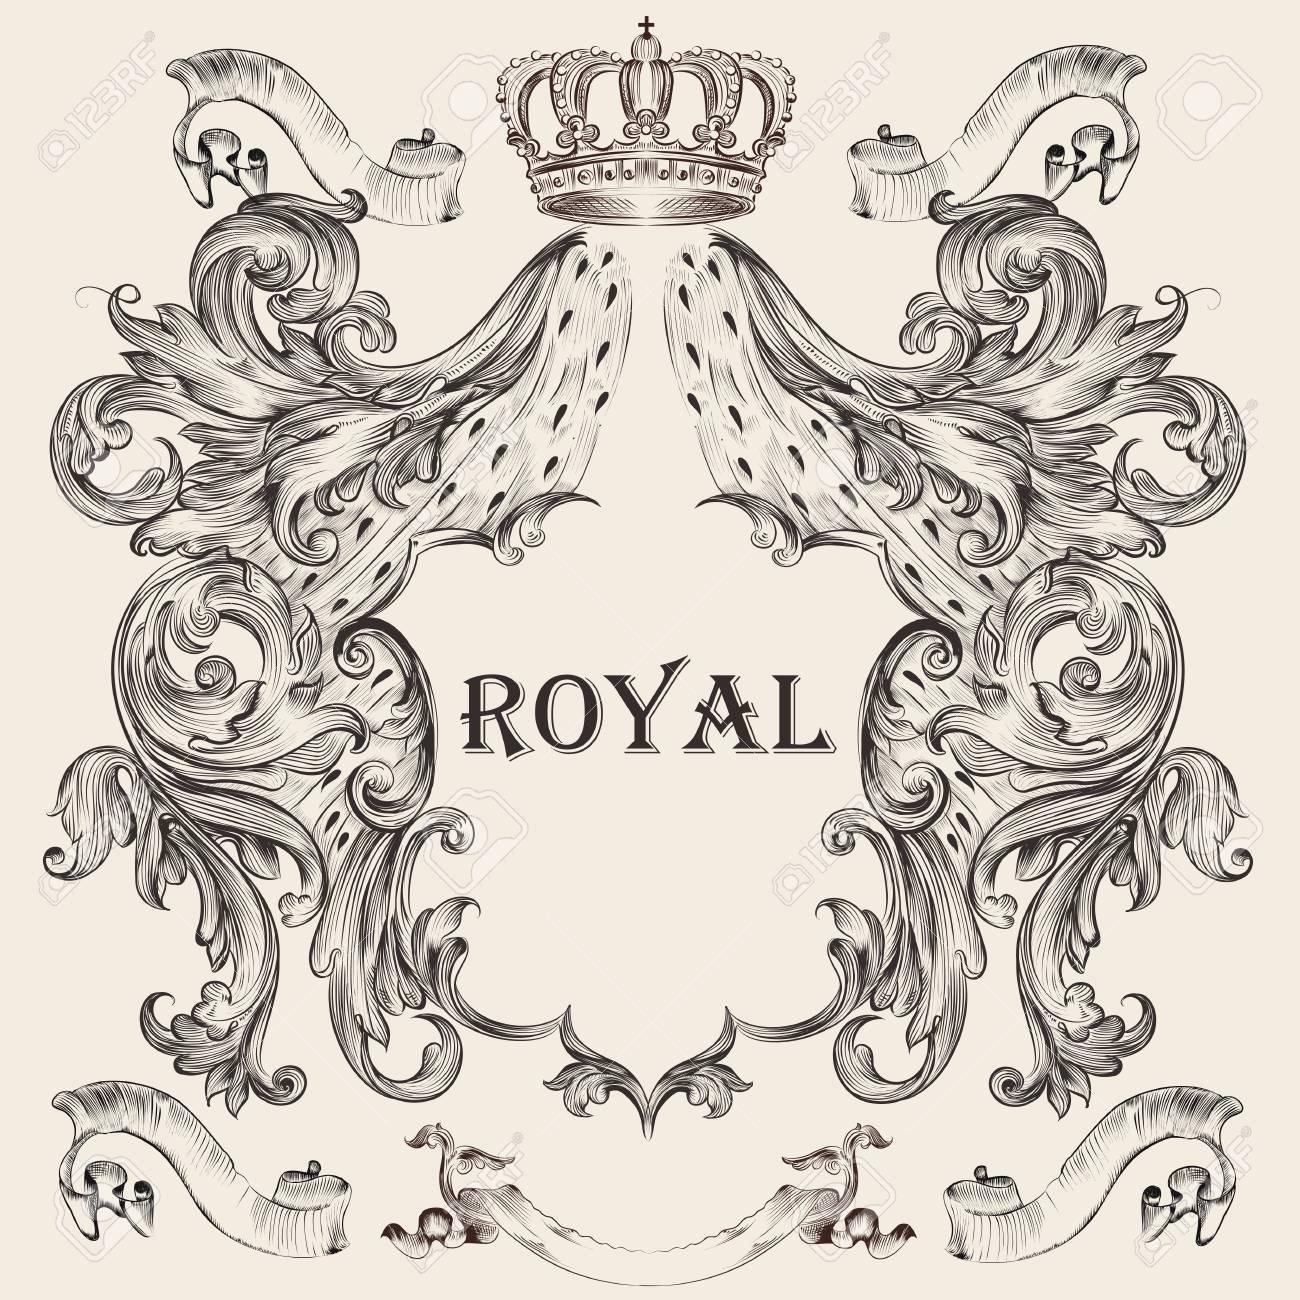 Beautiful heraldic design with shield, crown in vintage illustration. - 88262157